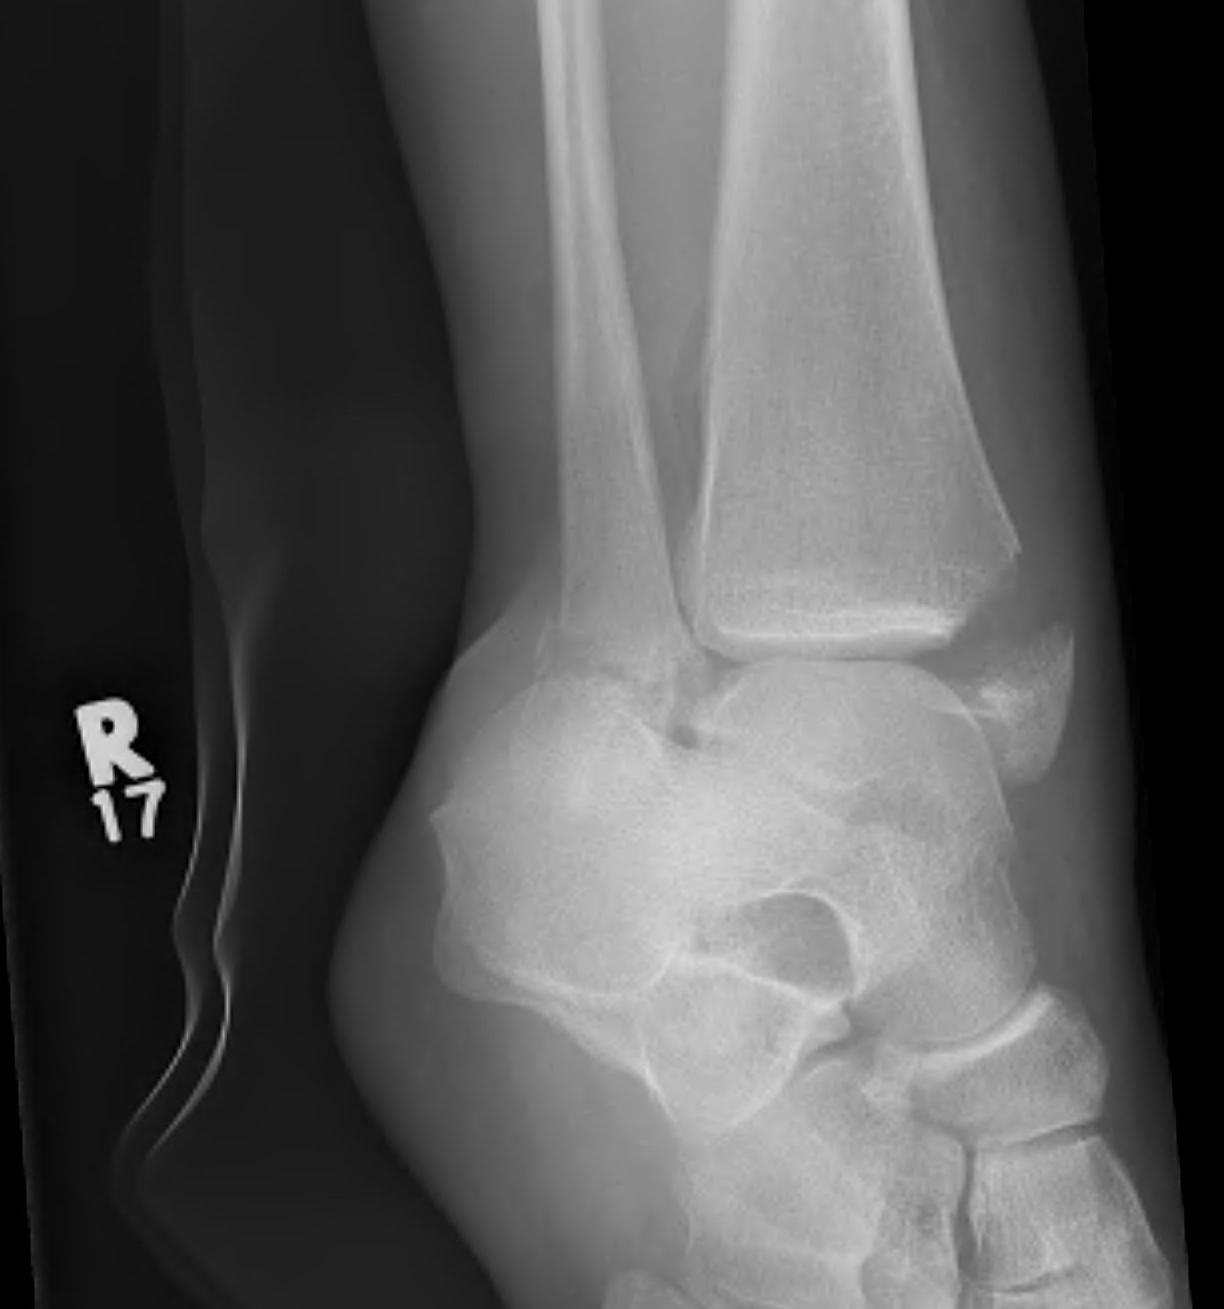 Ankle Fracture Supination Adduction